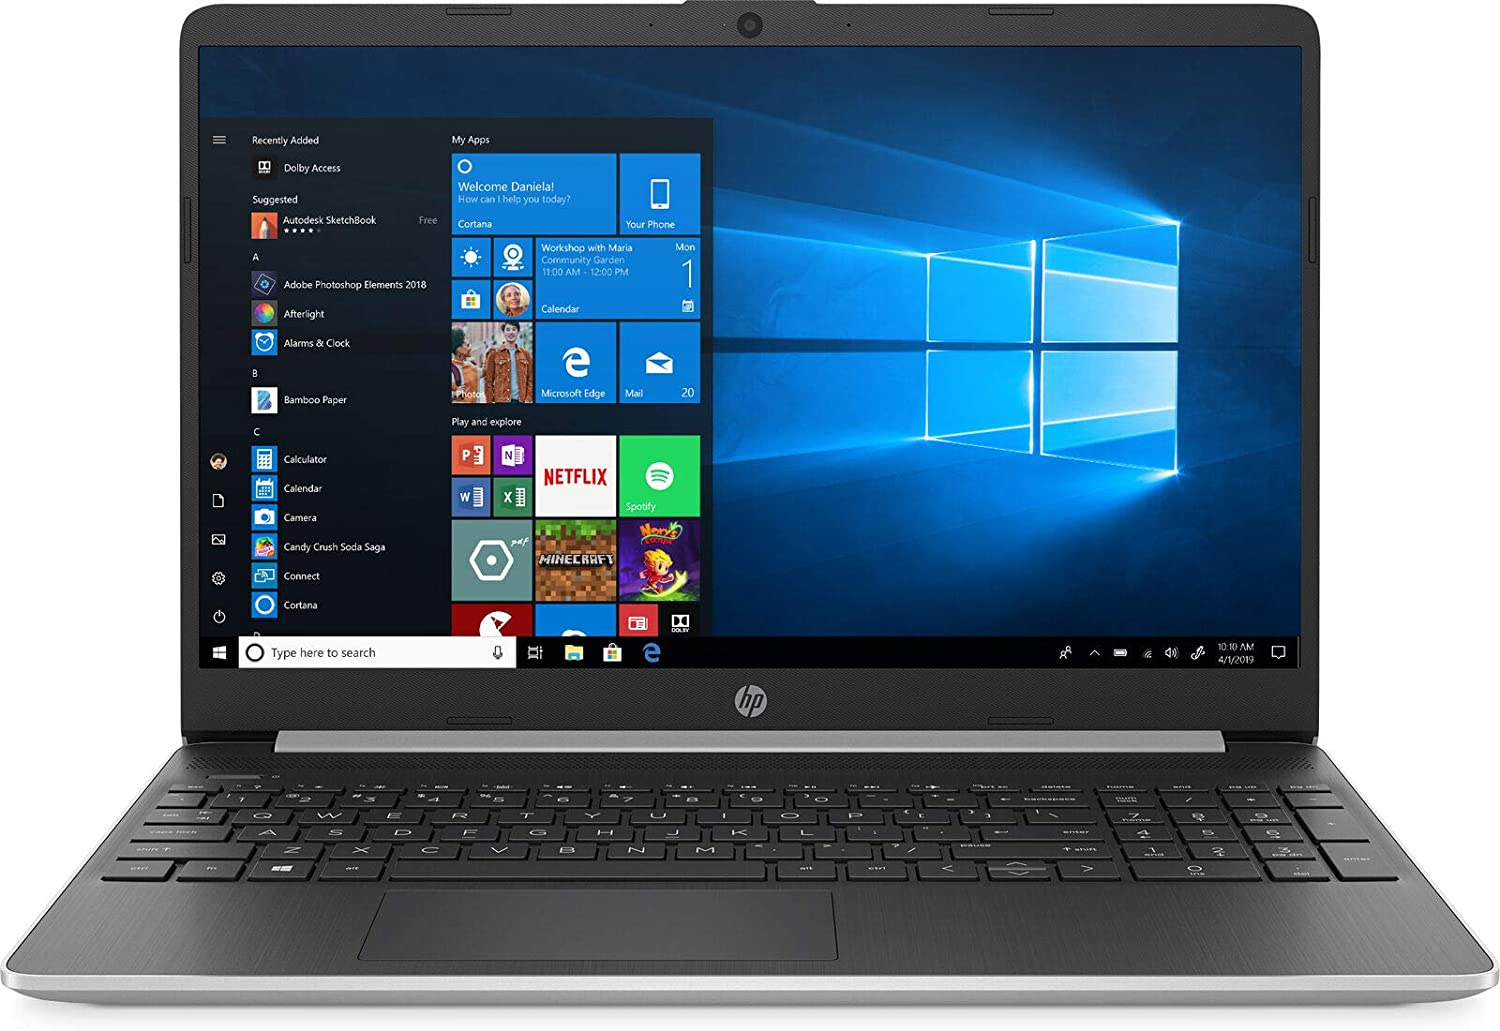 HP 15.6-inch HD WLED-Backlit Touchscreen Business Laptop, 10th Gen Intel Core i5-1035G1 up to 3.6GHz, 8GB DDR4, 512GB SSD, HD Camera, HD Audio, 802.11 AC, Bluetooth, USB 3.1 Type-C, HDMI, Windows 10